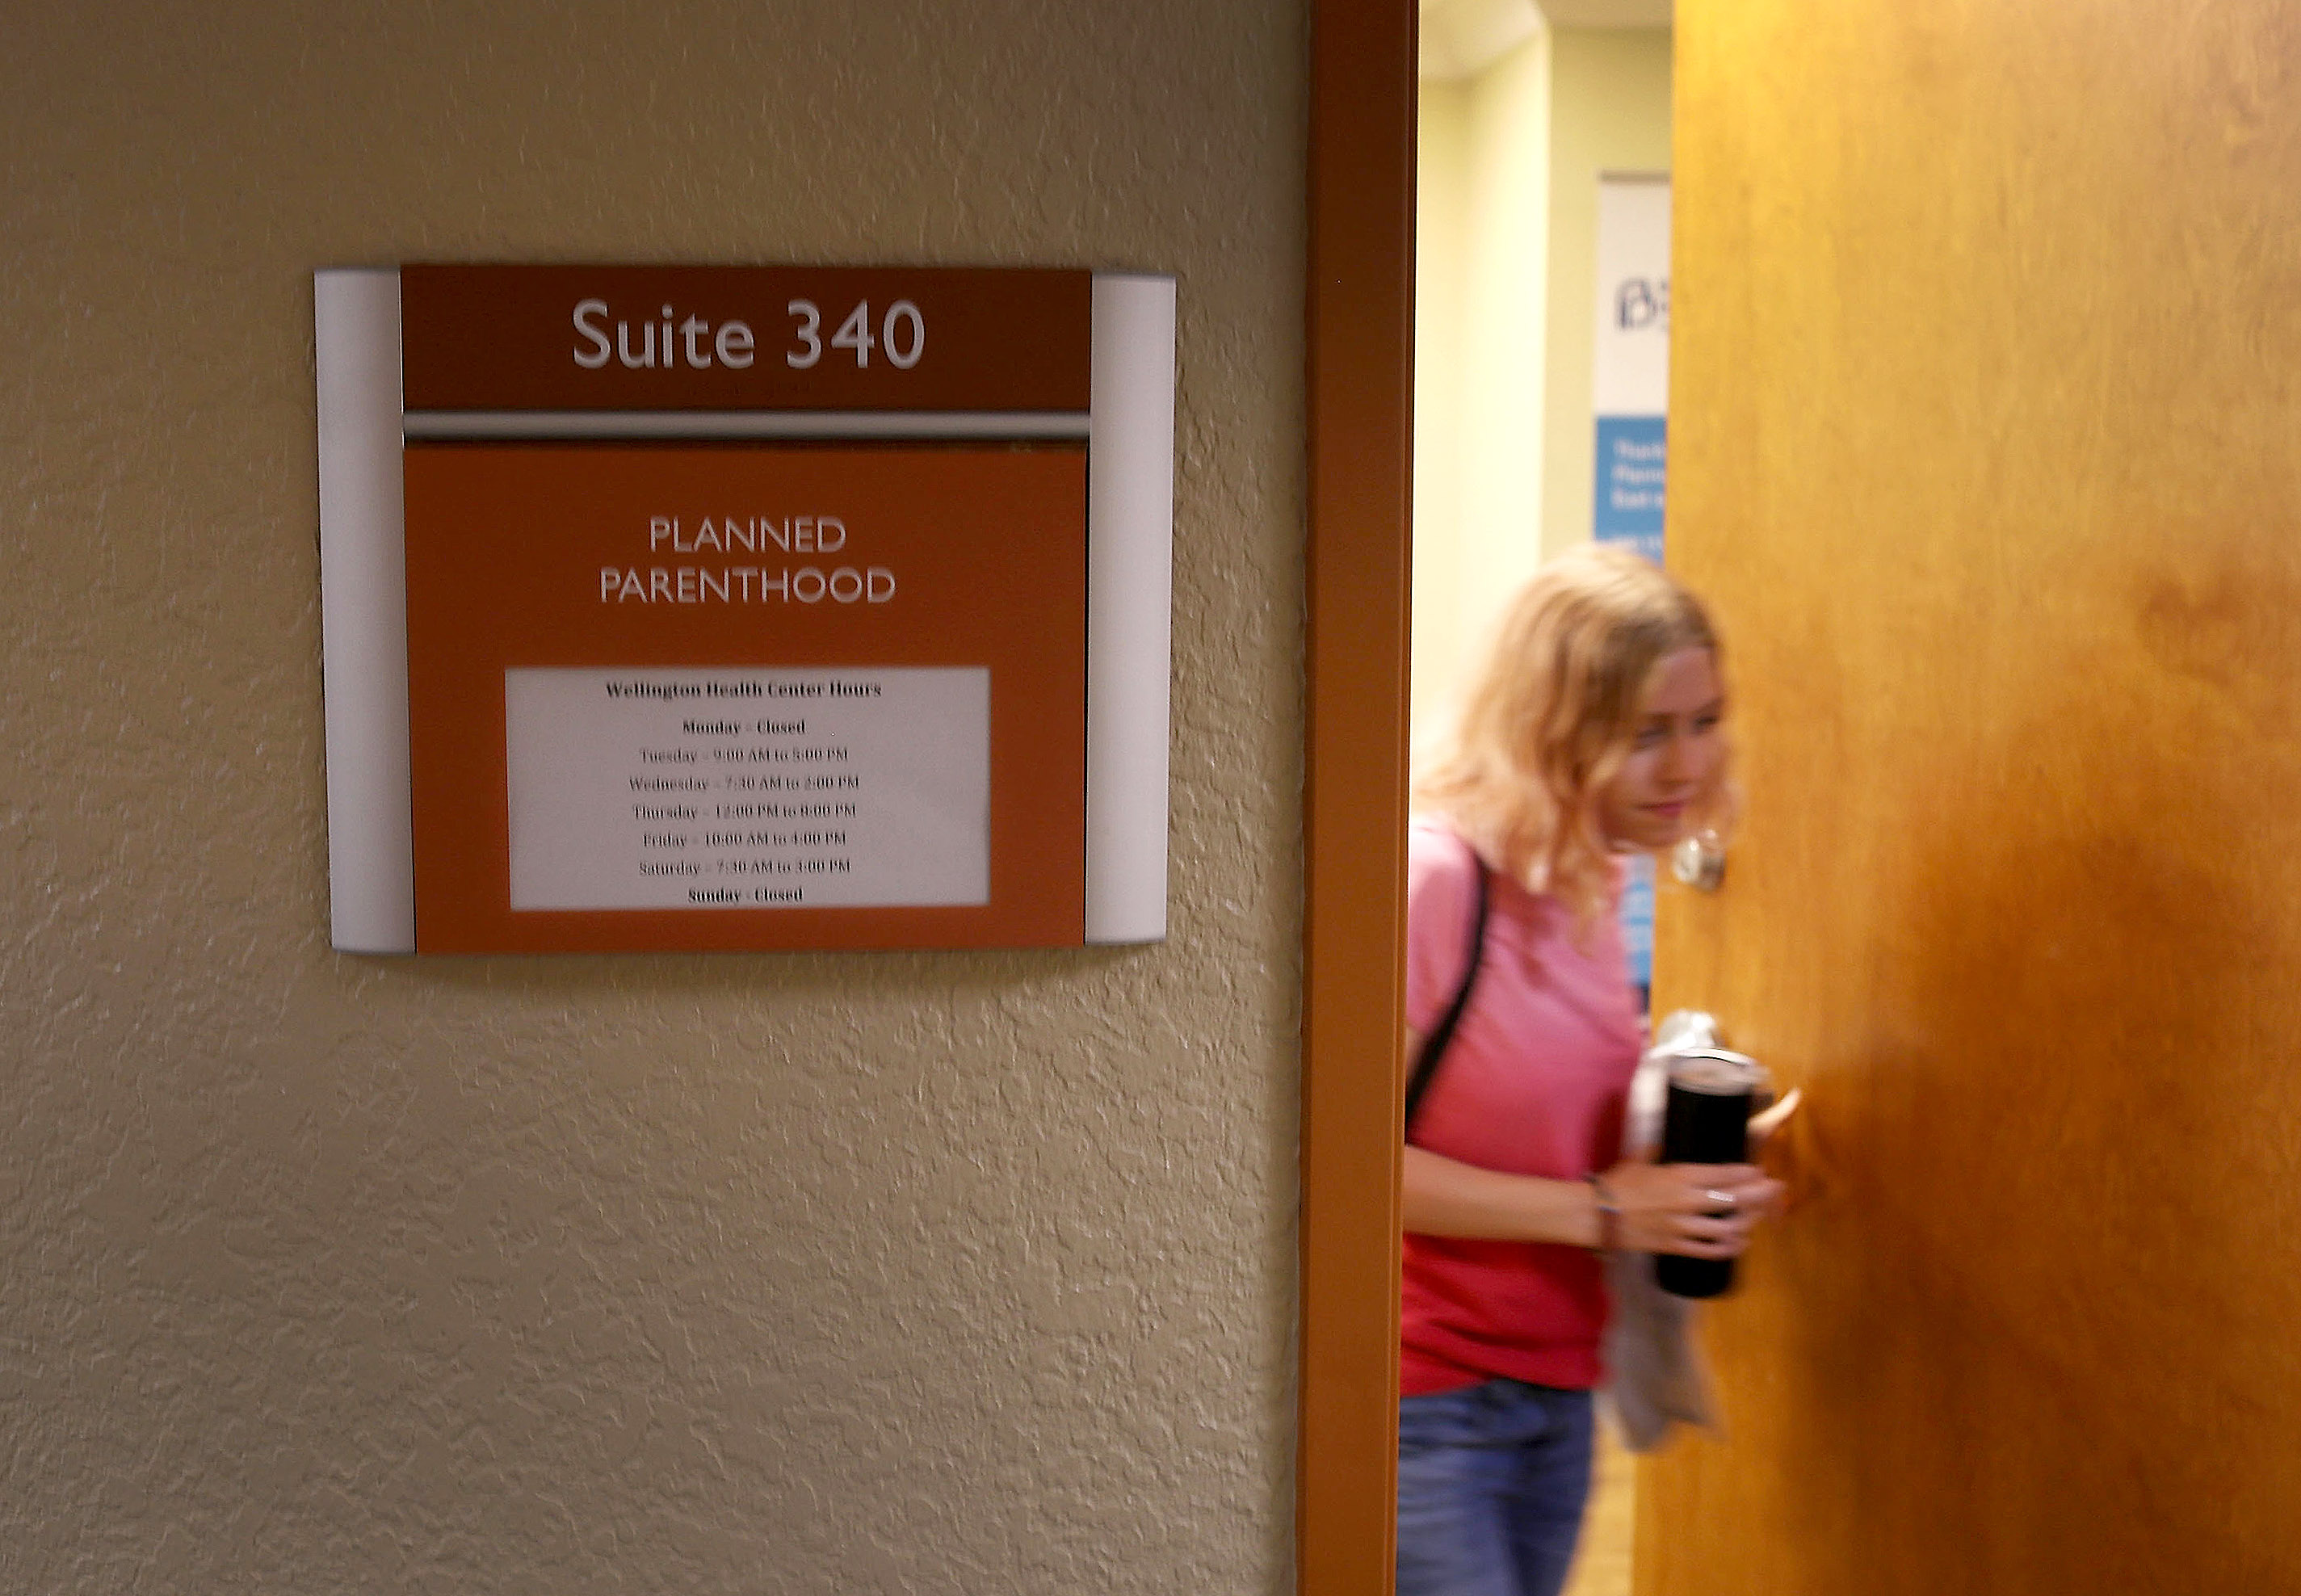 A Planned Parenthood office.